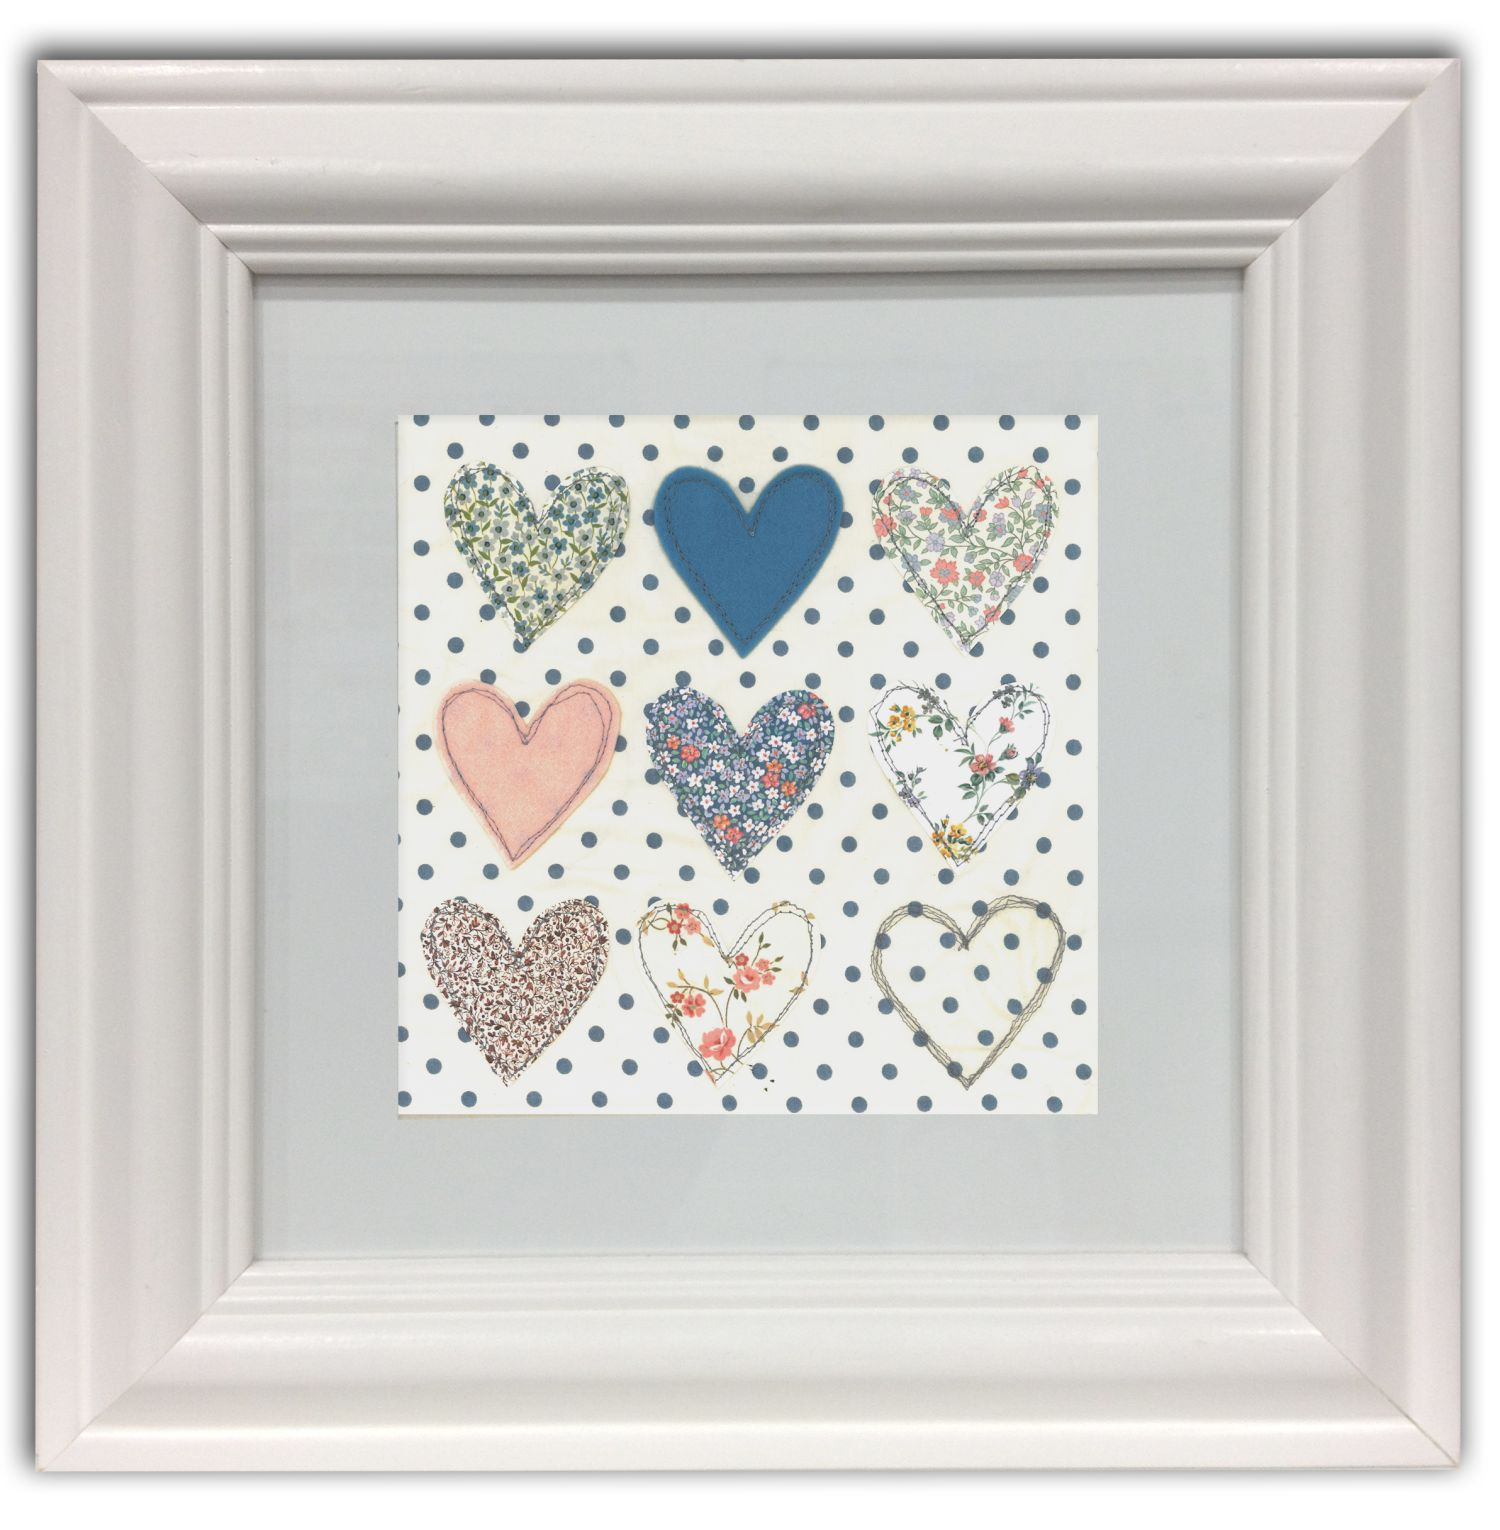 Polka dot hearts framed wall art print